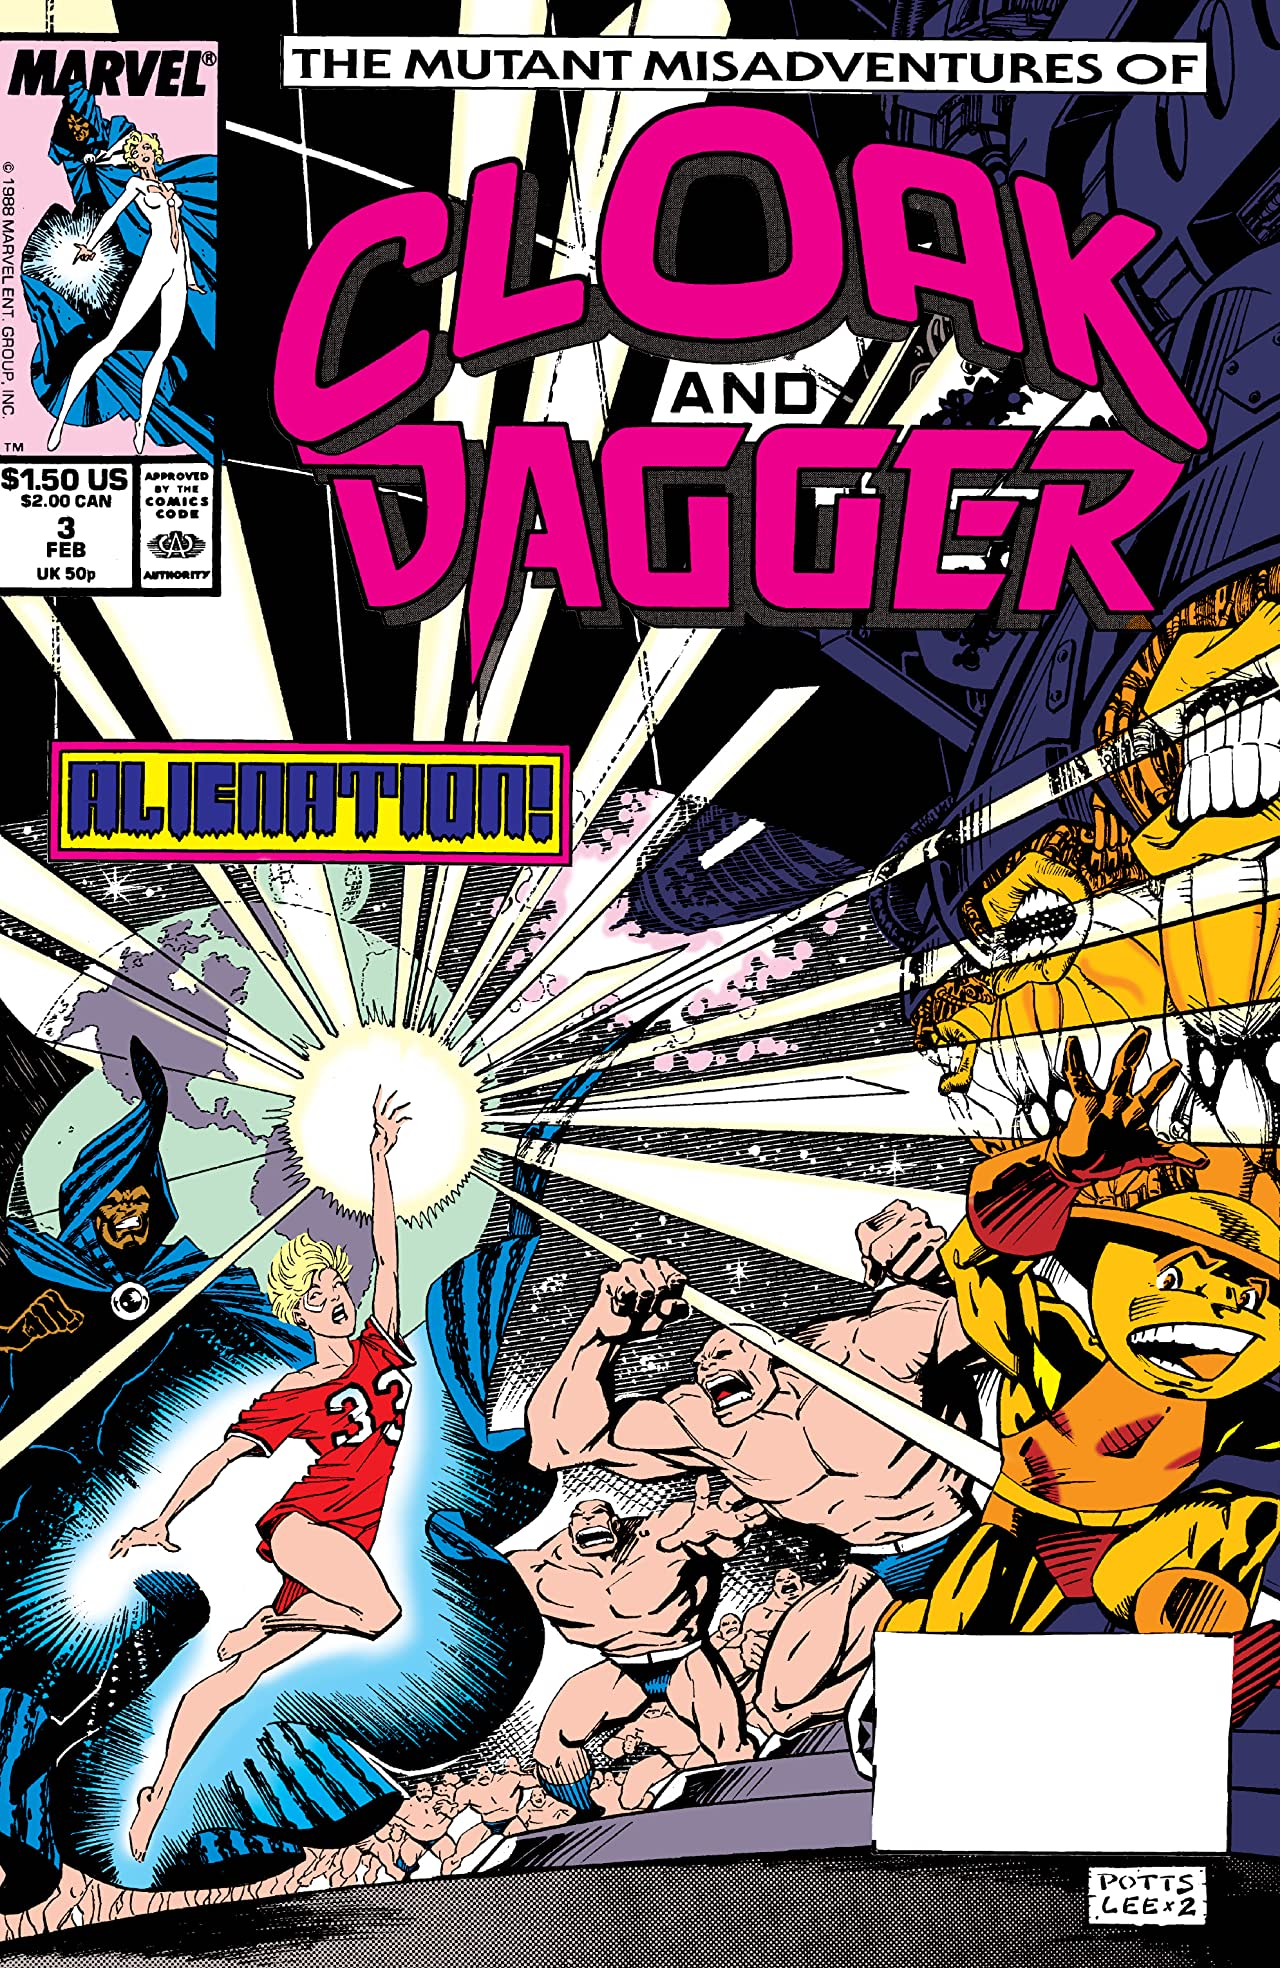 The Mutant Misadventures of Cloak and Dagger (1988-1991) #3